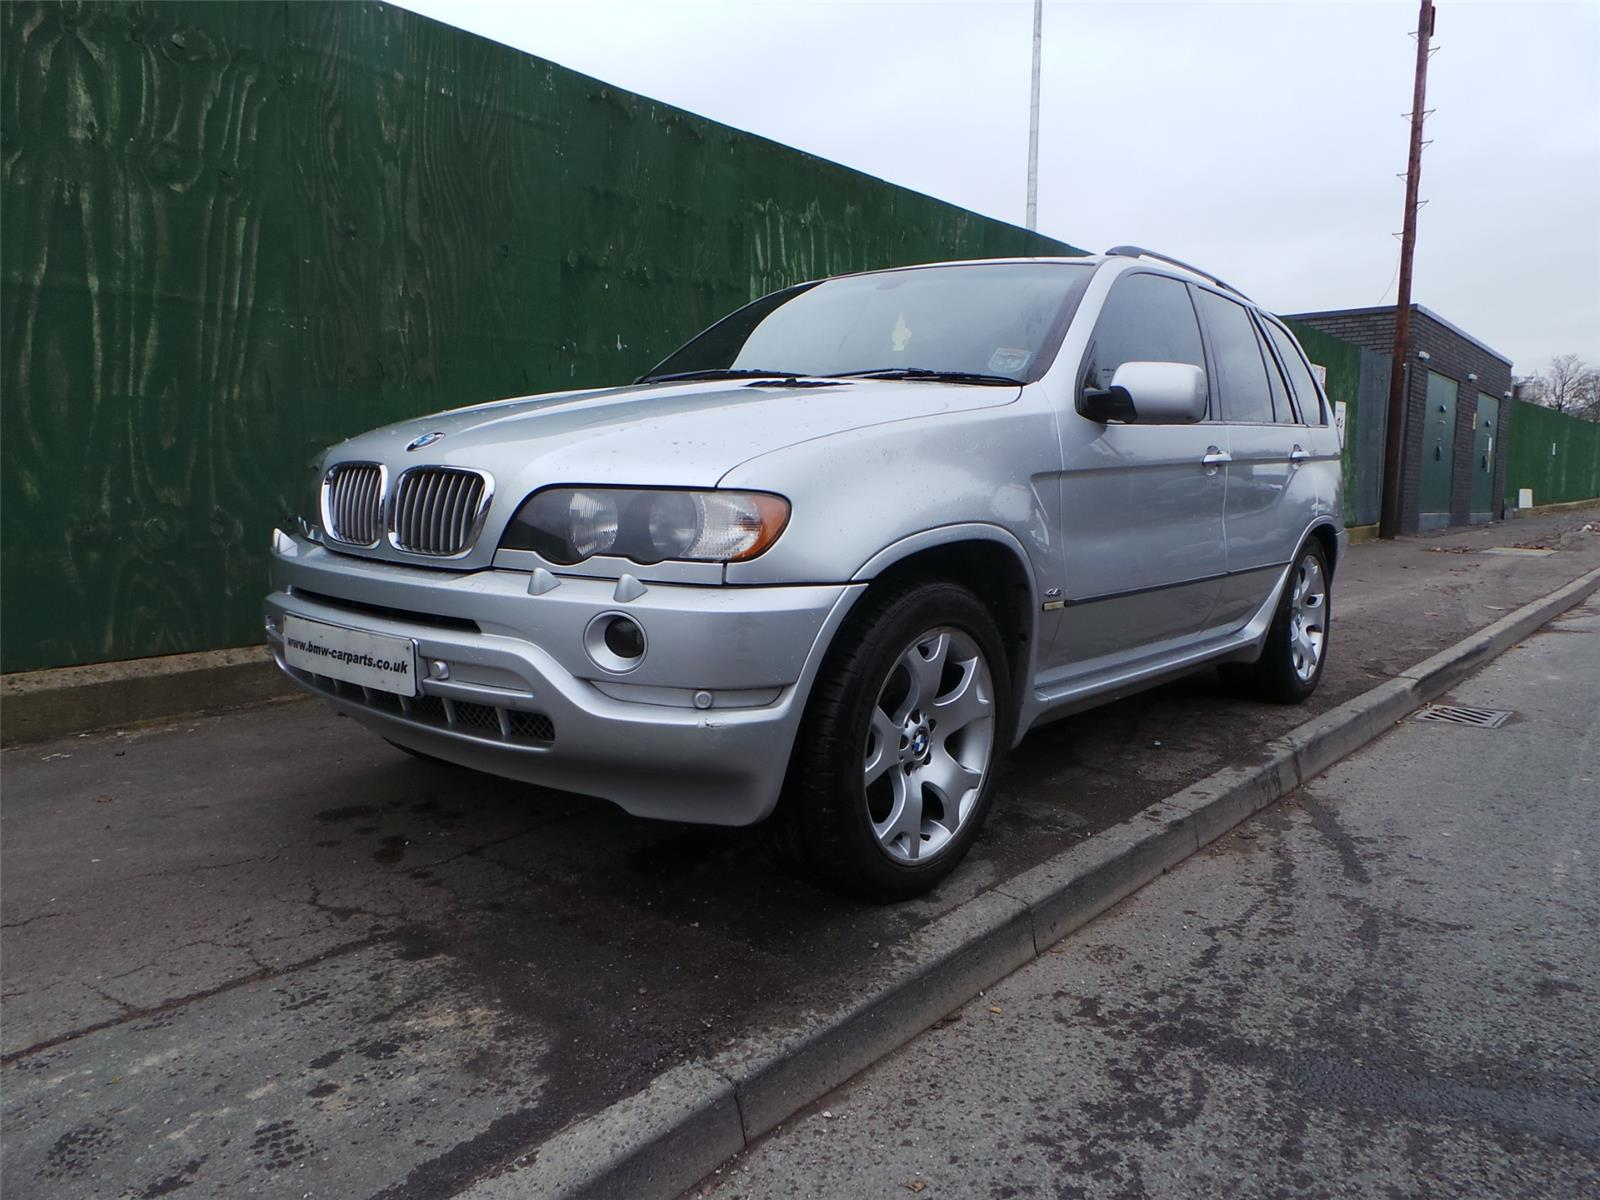 2001 bmw x5 sport estate petrol automatic breaking for used and spare parts from aswr in. Black Bedroom Furniture Sets. Home Design Ideas